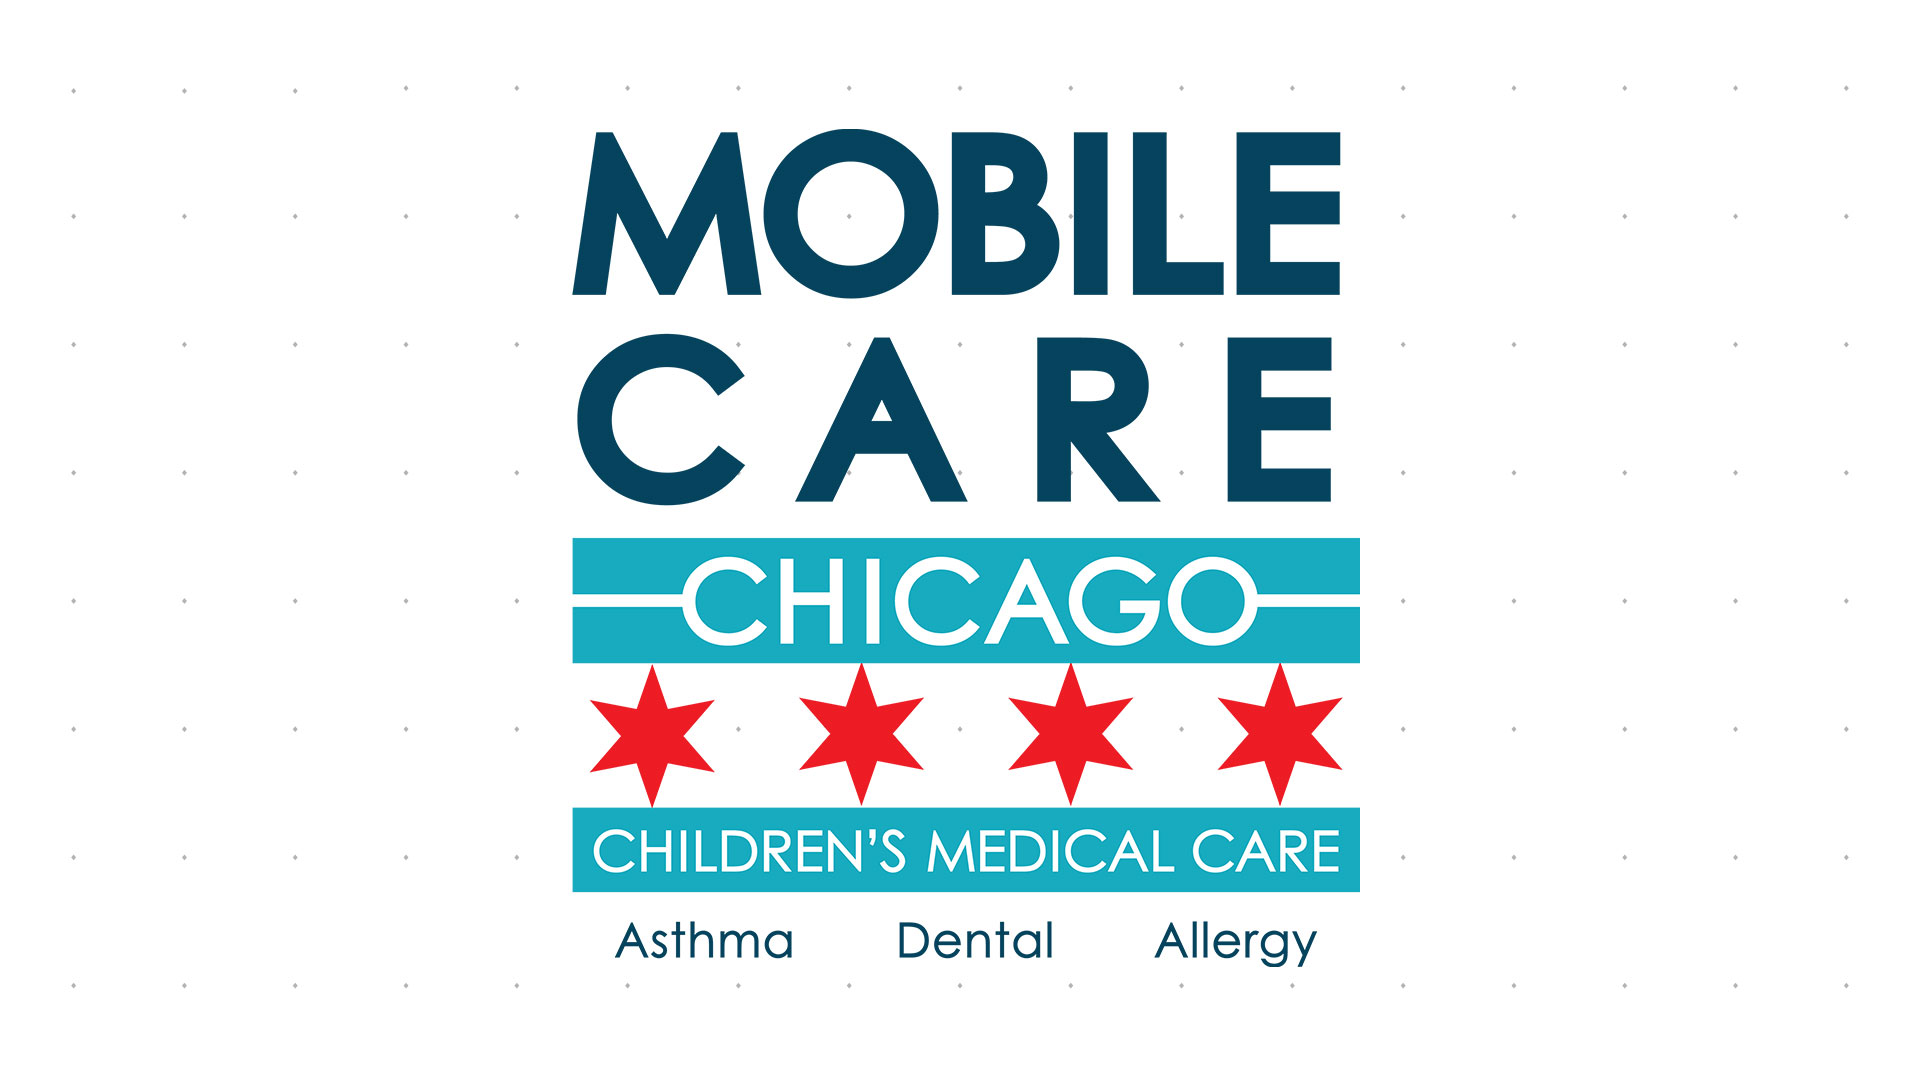 Mobile Care Chicago